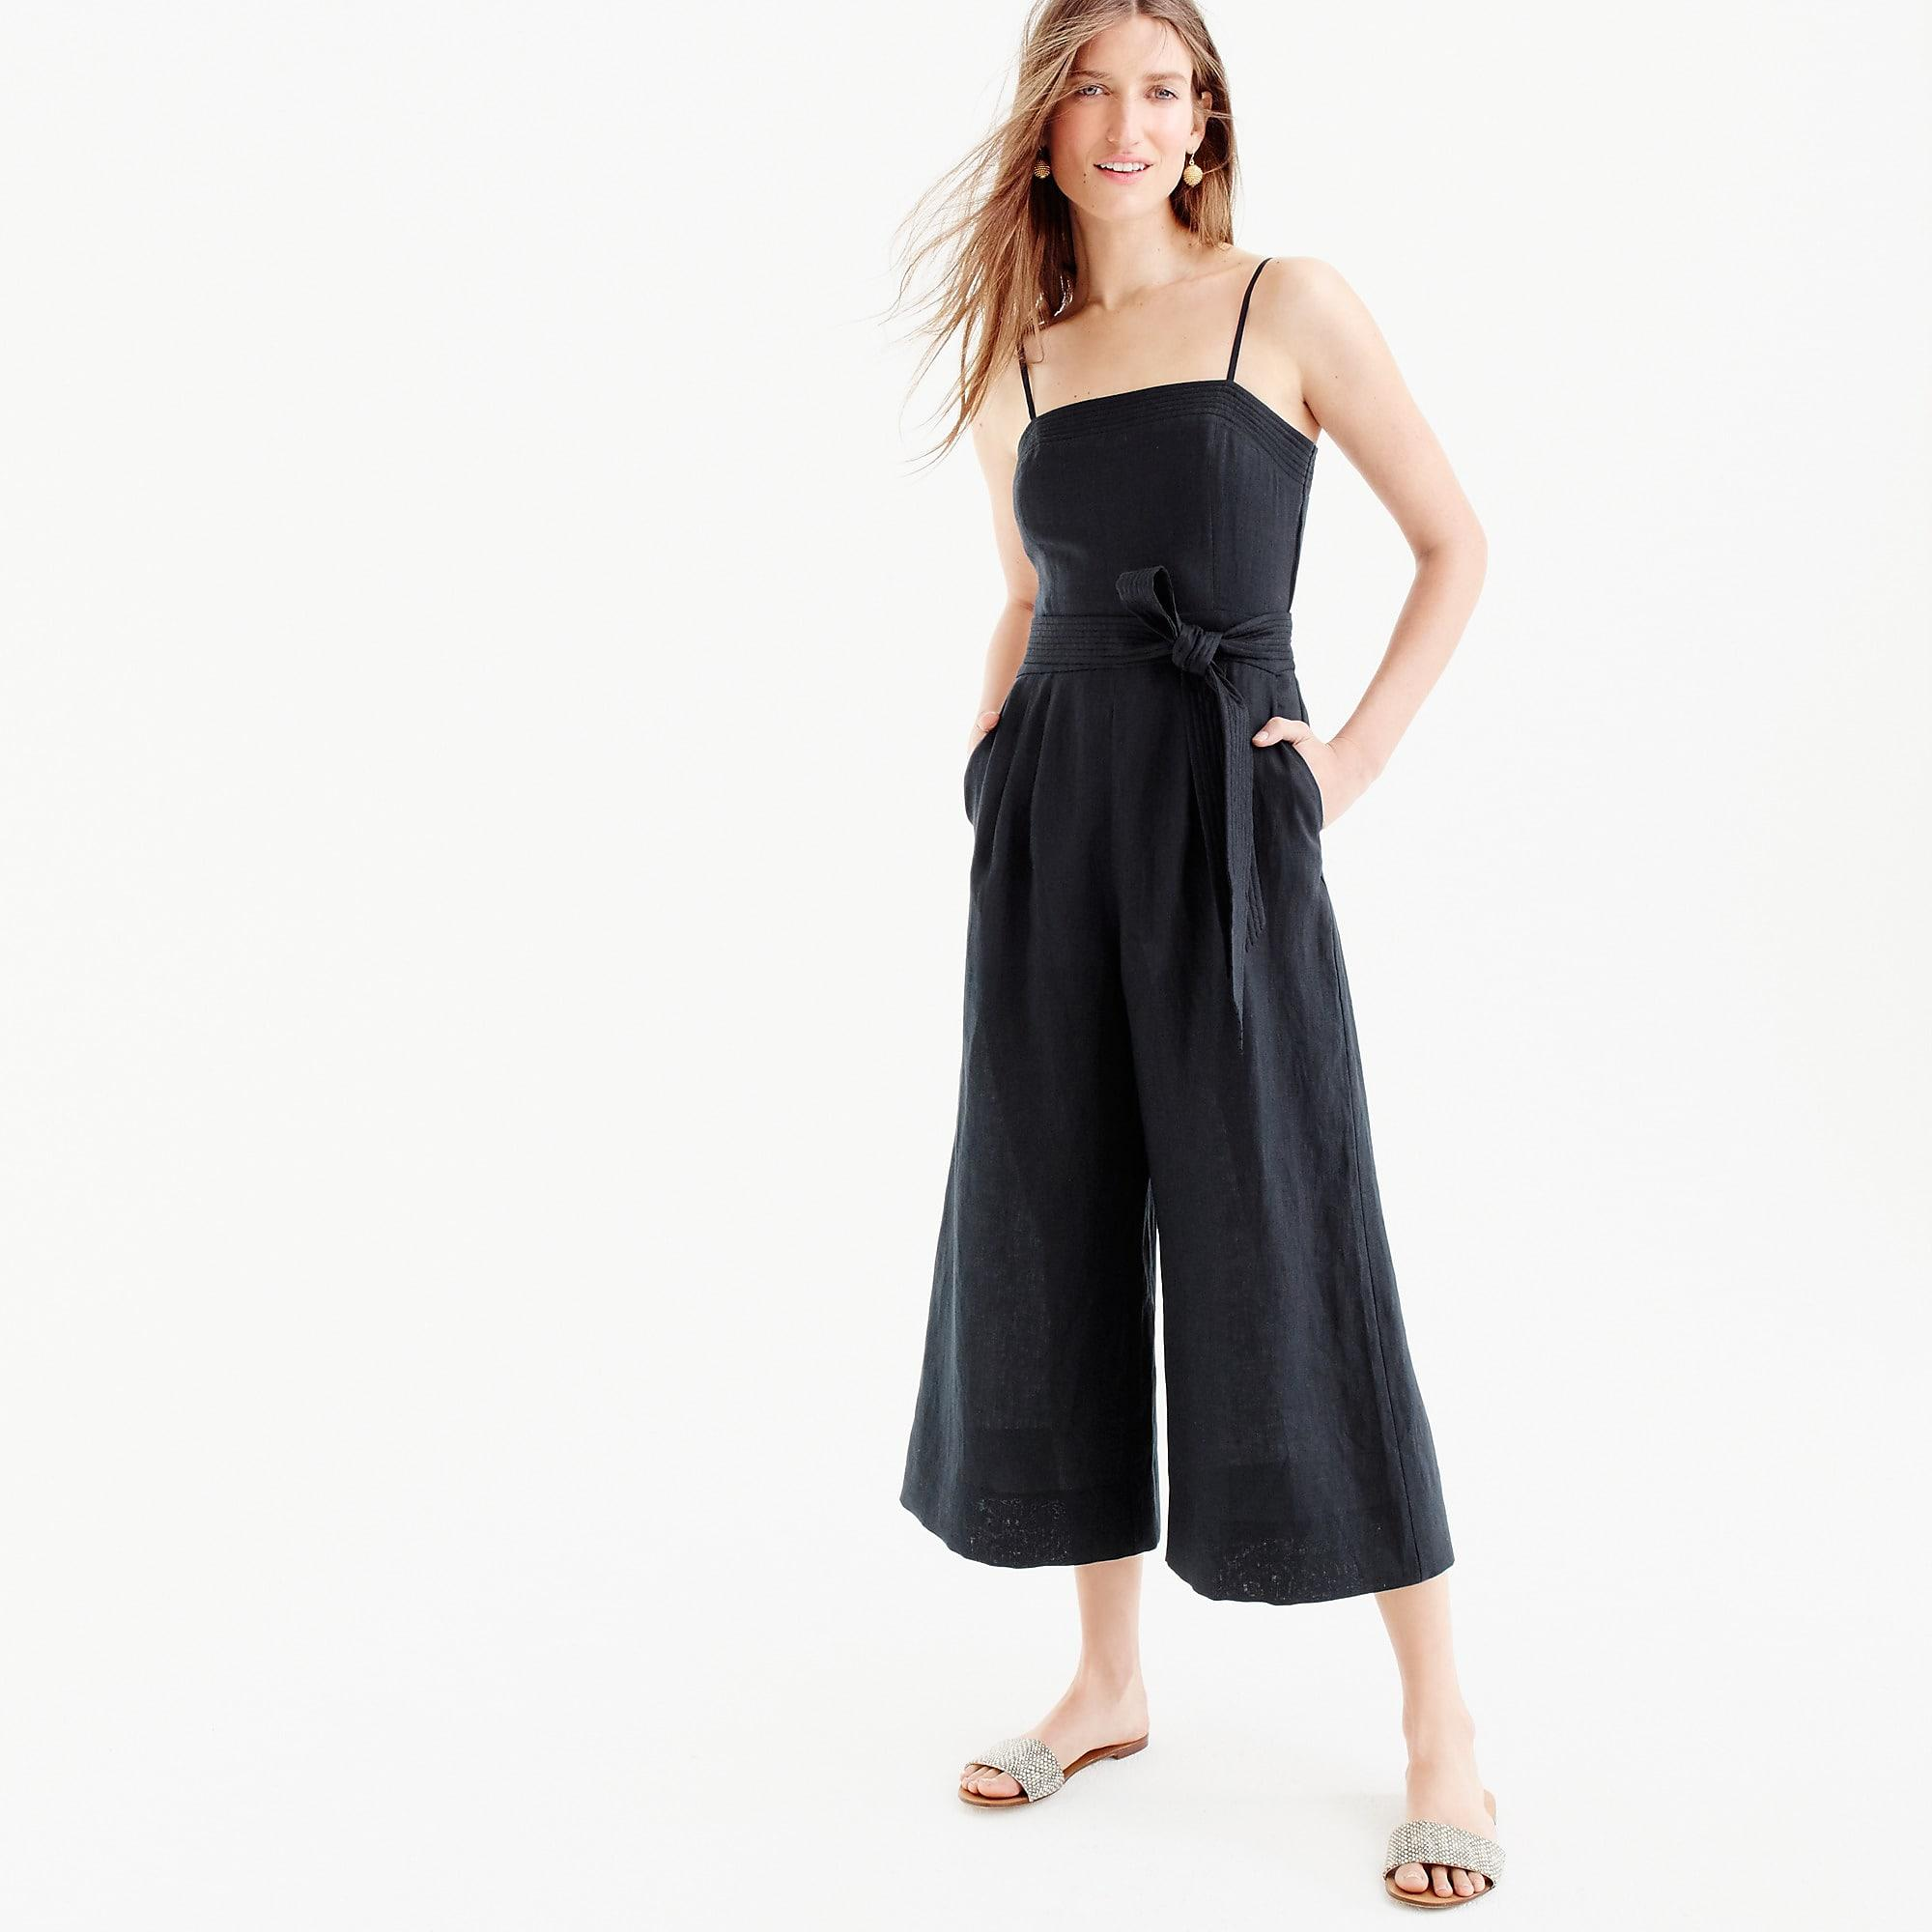 41537afb523 J.Crew Petite Linen Jumpsuit With Tie in Black - Lyst